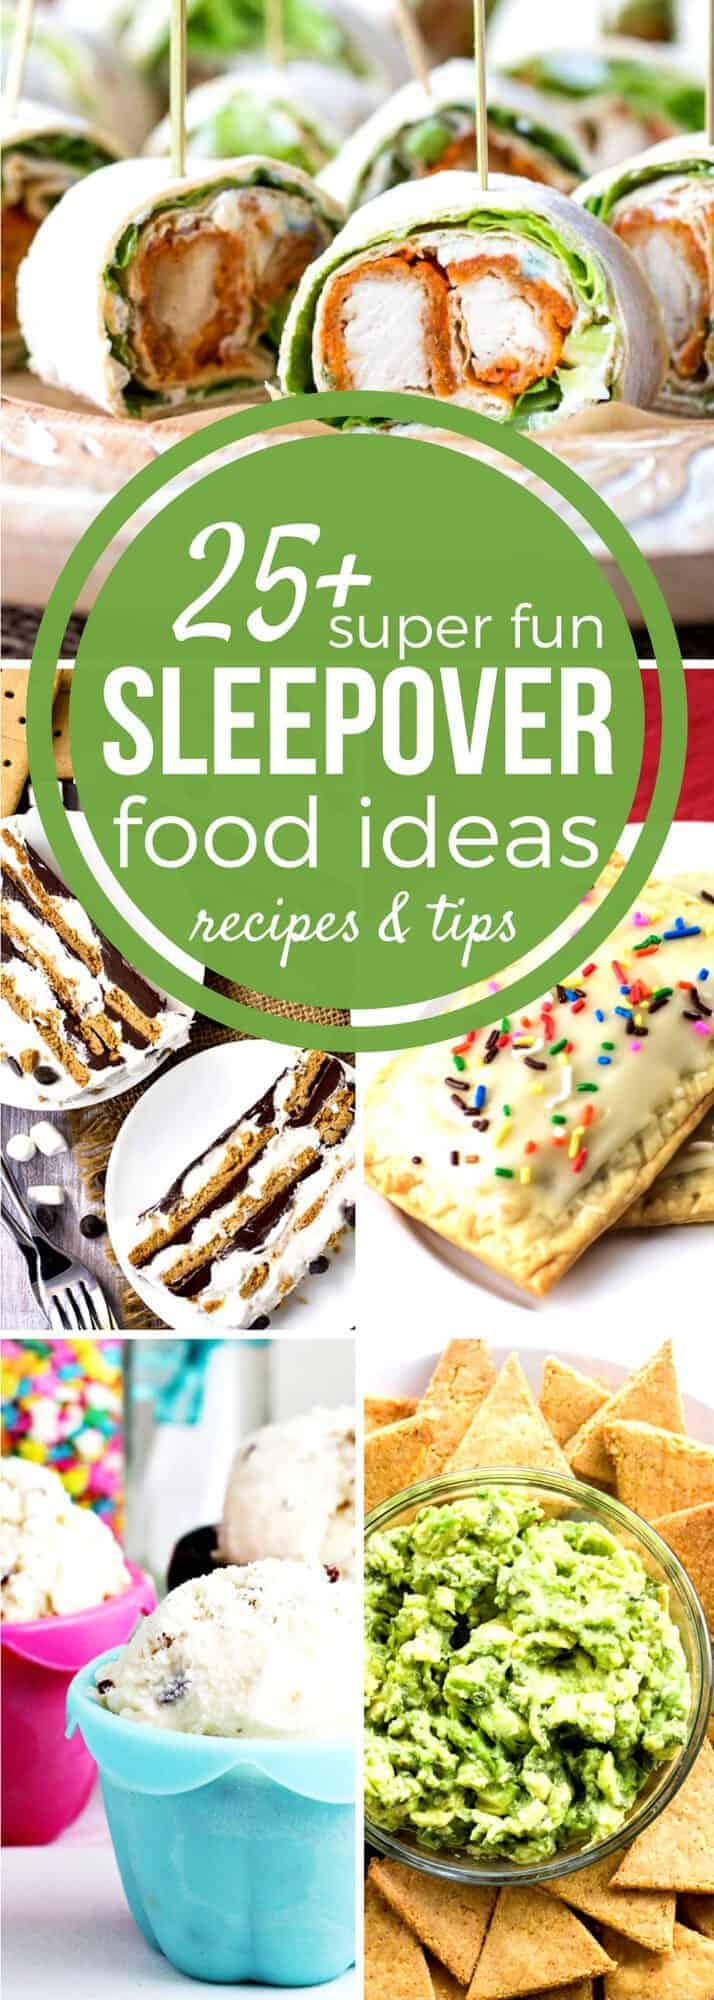 Need Sleepover Food Ideas for the big party? Our Sunday Supper recipe collection has fun dinner ideas, easy breakfast casseroles & fun-filled snacks too! Whether you decide to throw your own personal sleepover and relive the past or you want to cook up something special for your child and their friends, these Sunday Supper sleepover food ideas will set you on the right track and keep you there from breakfast to midnight snack!